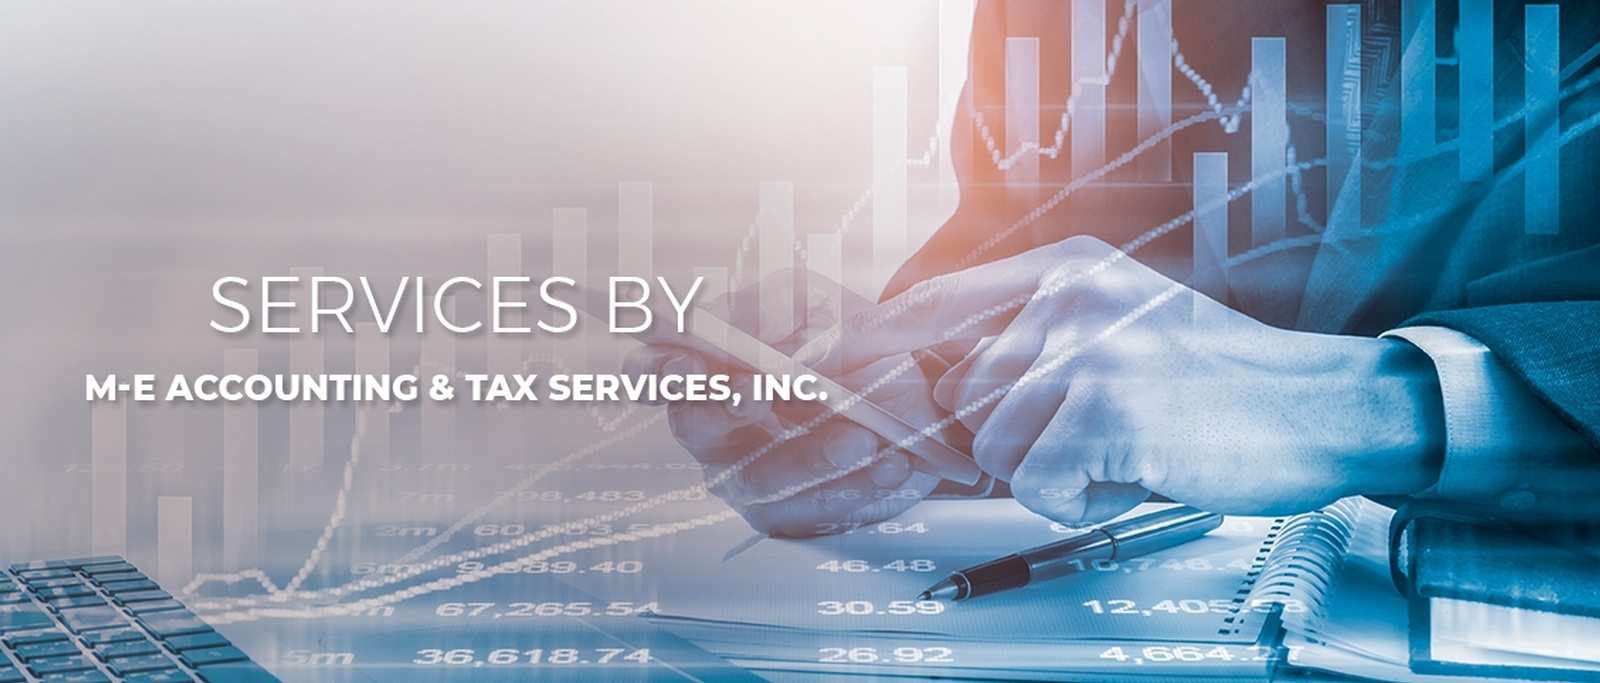 Accounting Services in Cape Canaveral